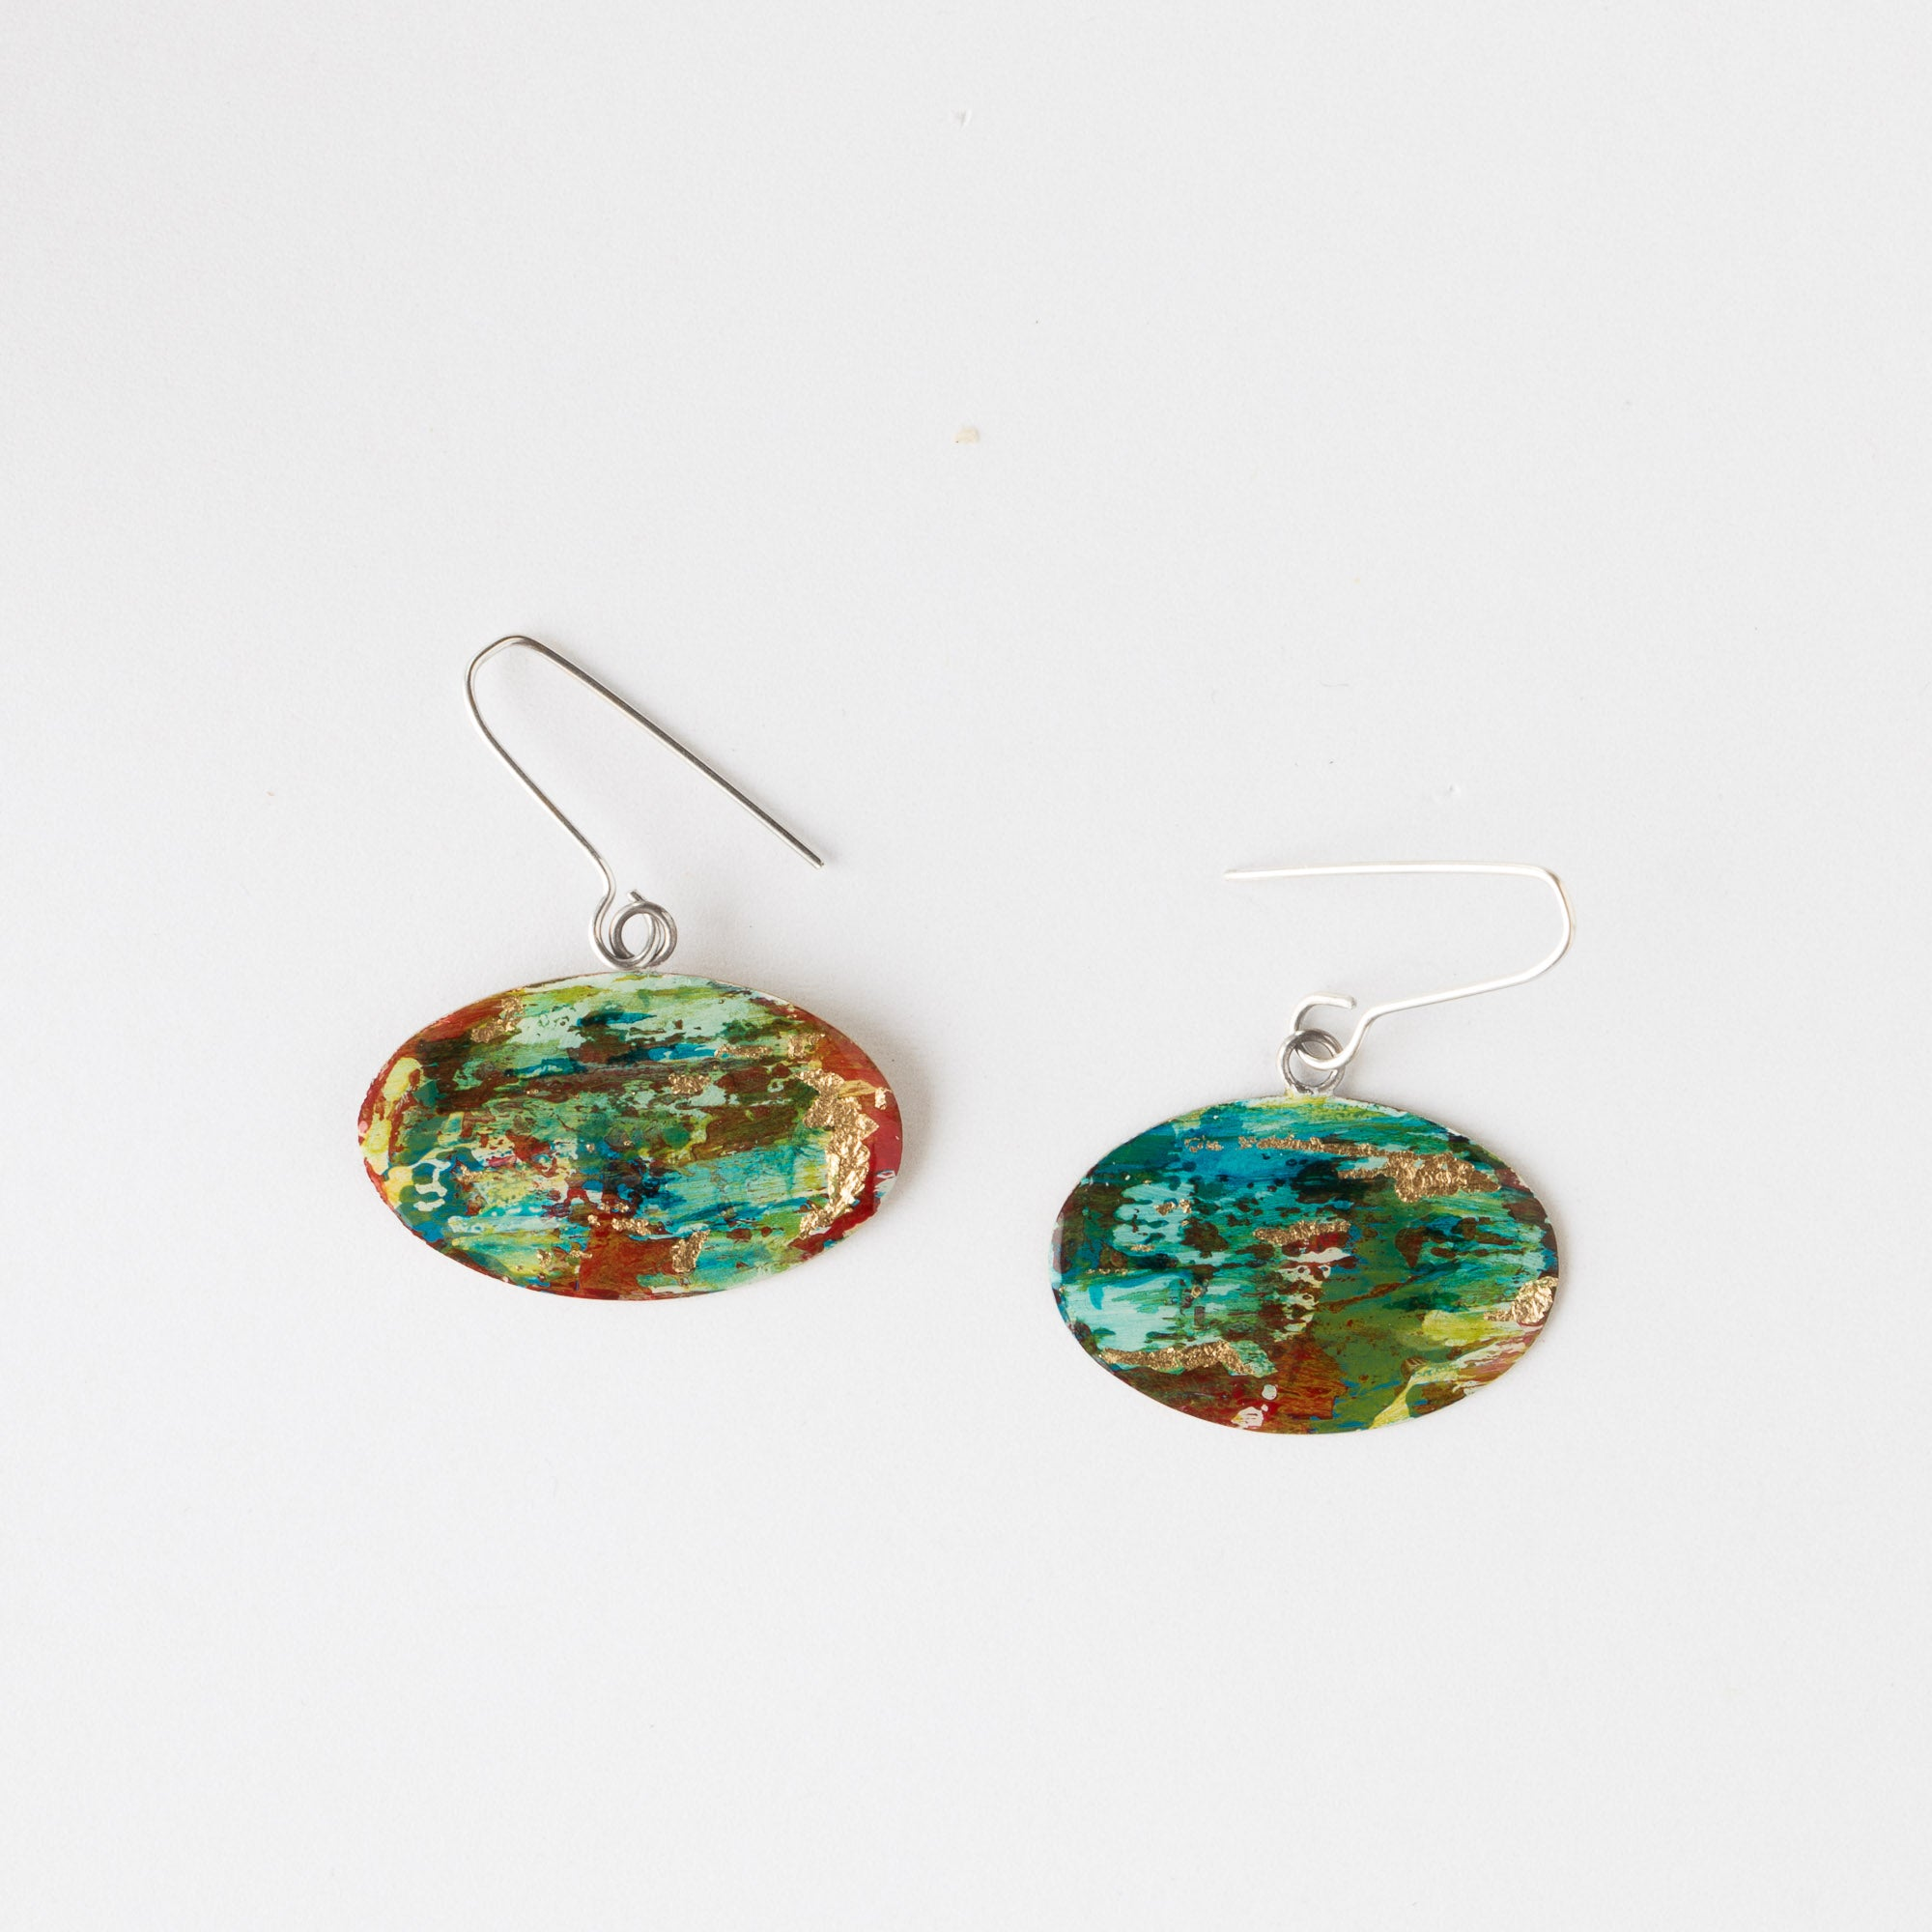 728 - Handmade Oval Painted Brass Contemporary Earrings - Sold by Chic & Basta